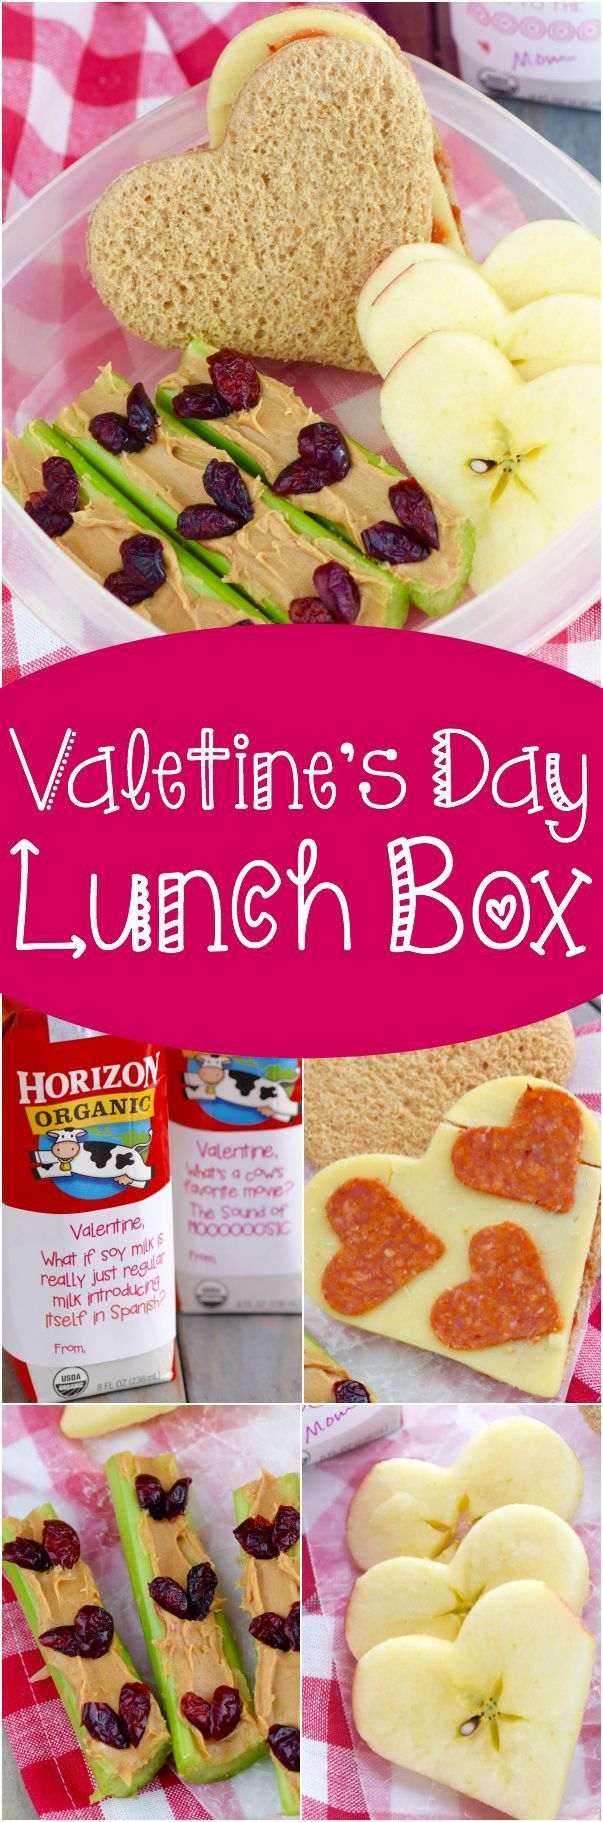 This Valentine's Day Lunch Box is super cute and you can dress it up with some fun printables to go on your Horizon milk box!